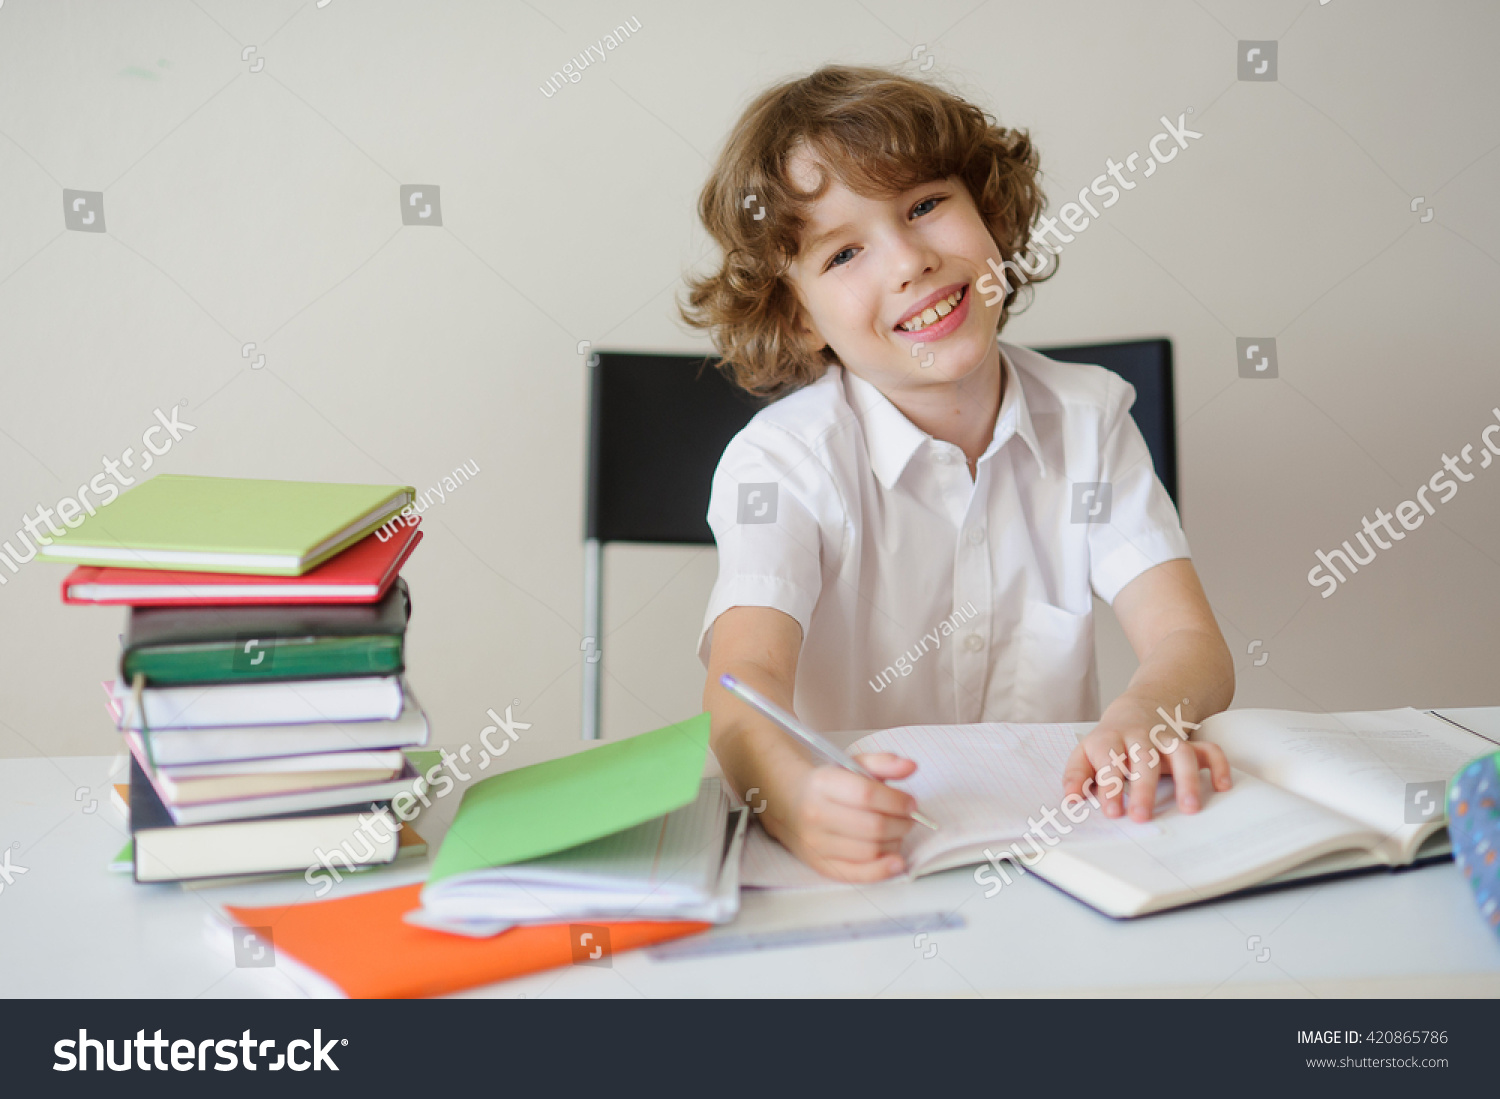 Who is the best essay writing service